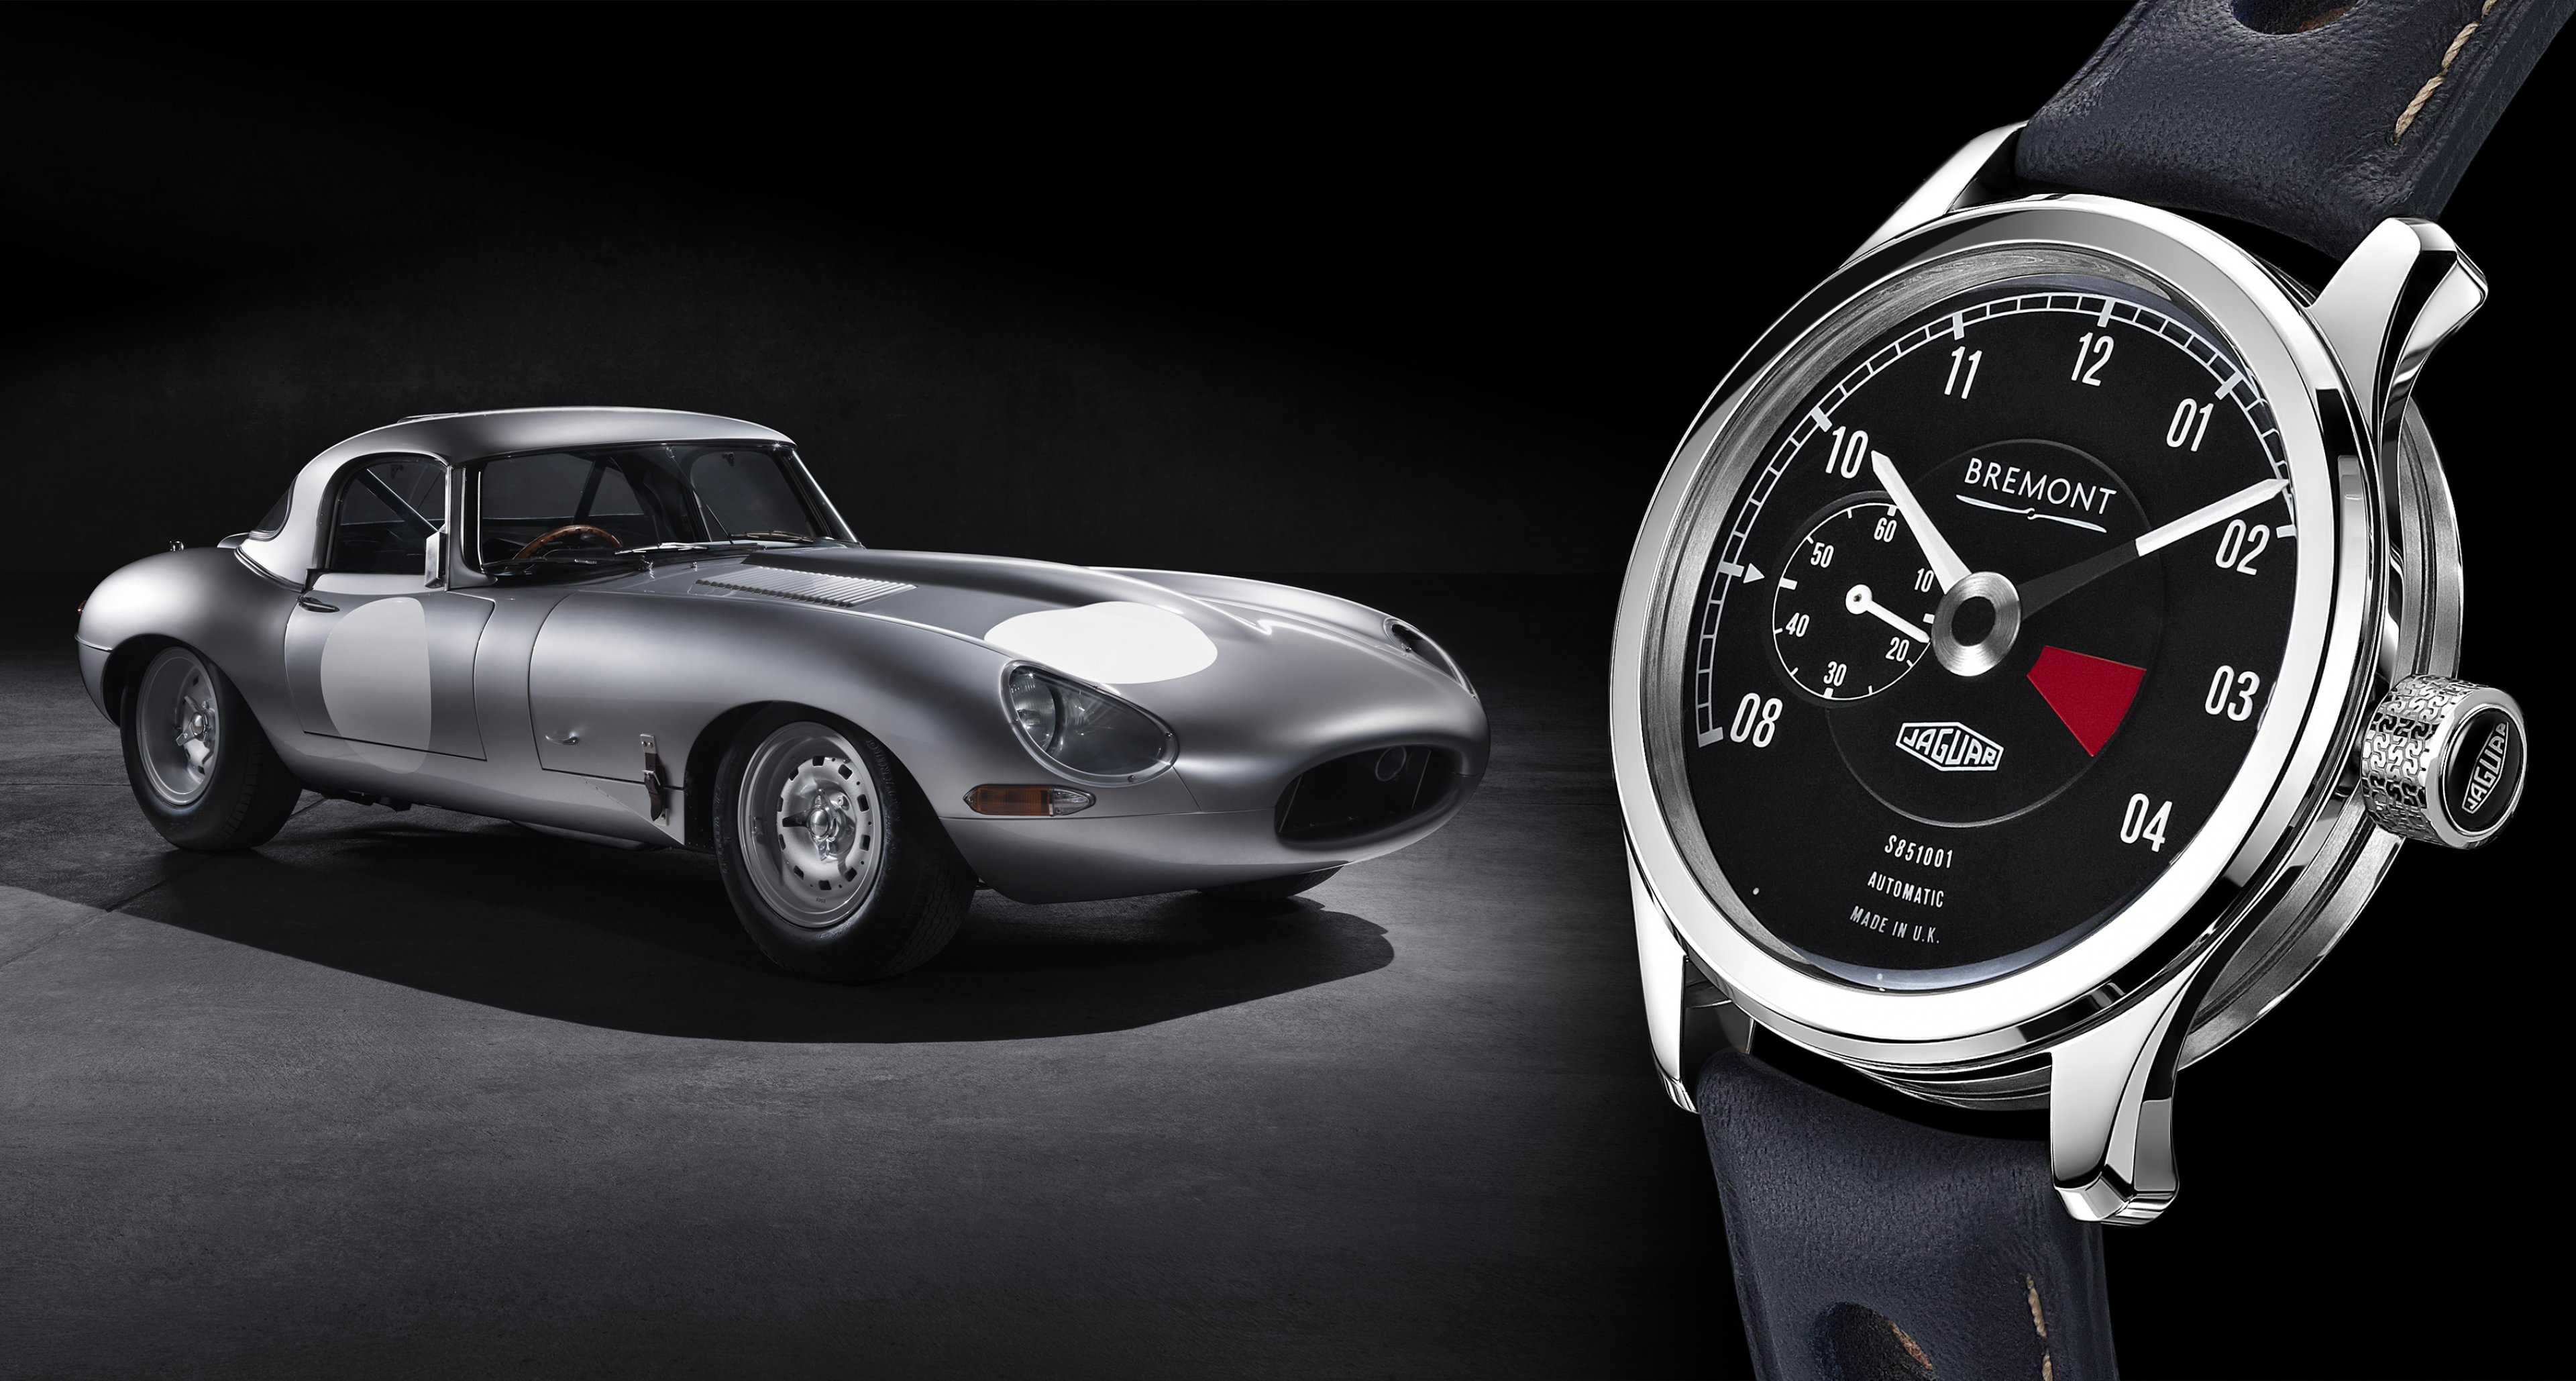 A watch dedicated to the rebirth of a racing legend - the Bremont Lightweight E-Type